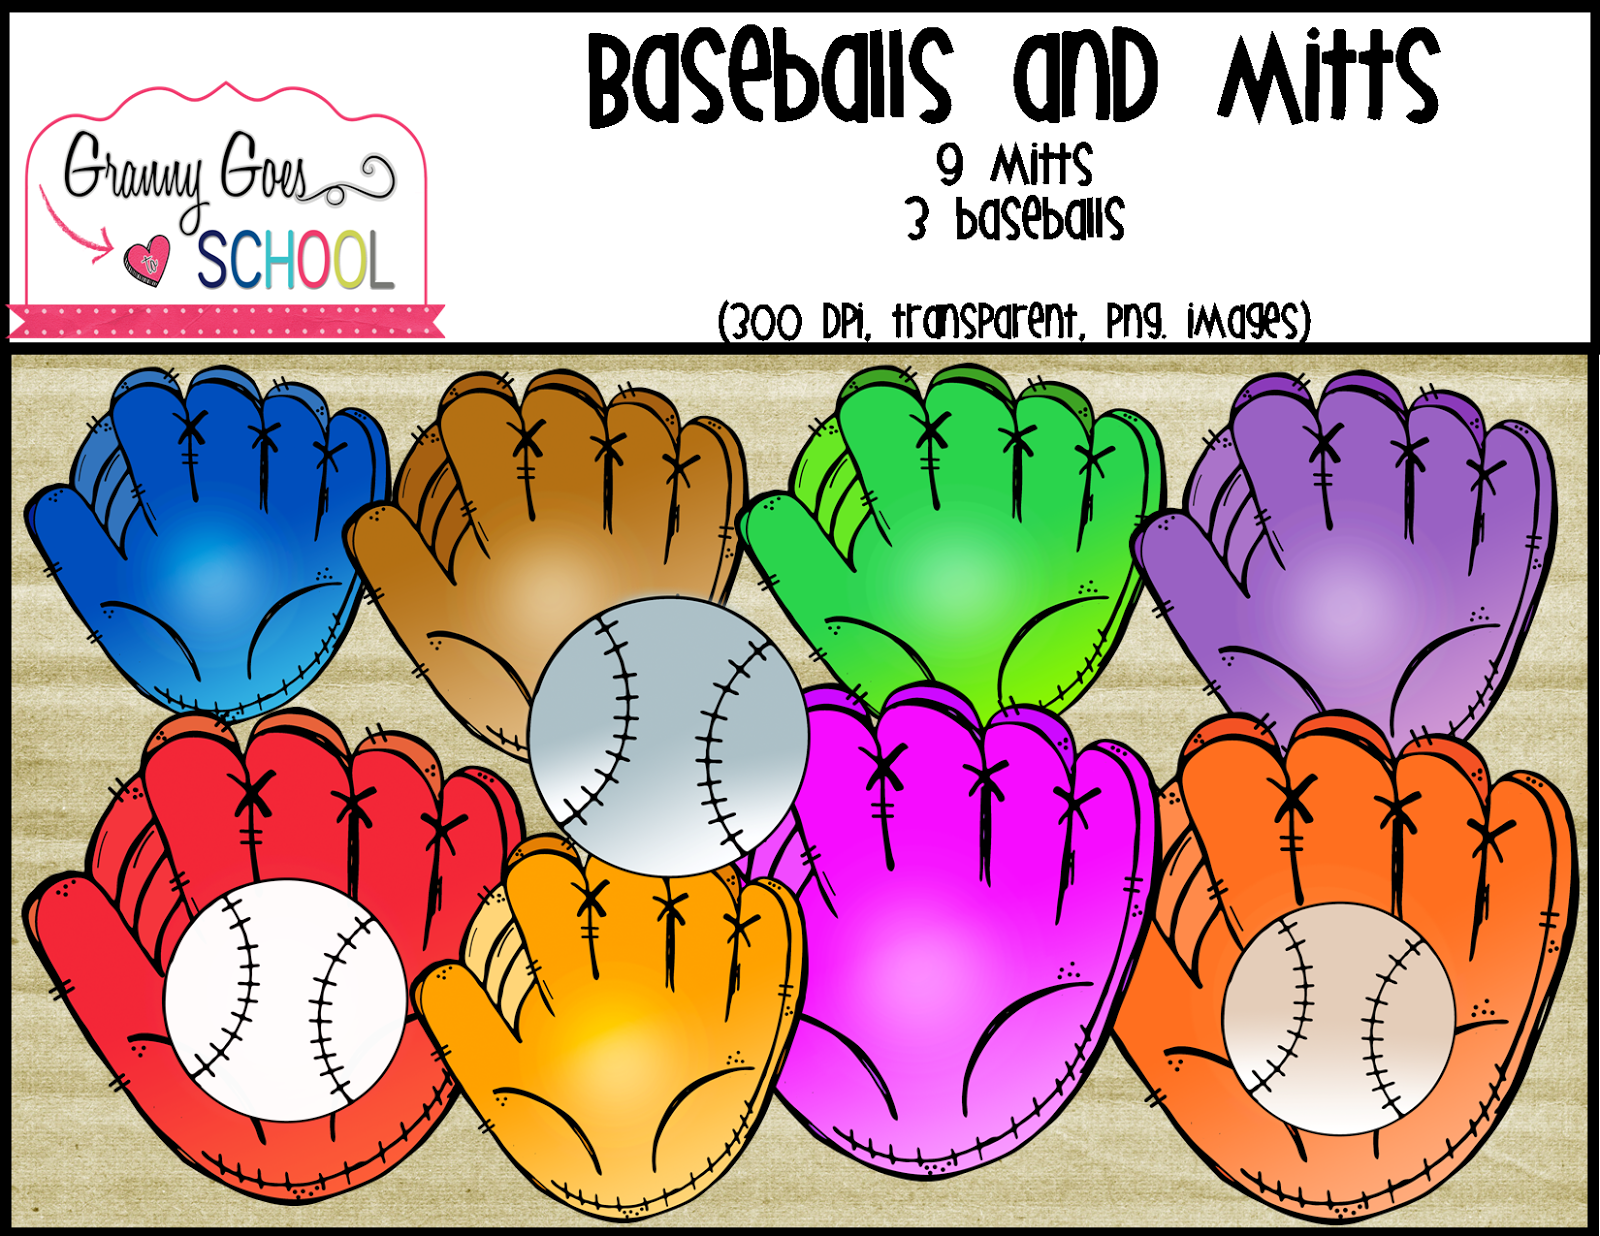 http://www.teacherspayteachers.com/Product/Baseballs-and-Mitts-Clip-Art-1499099